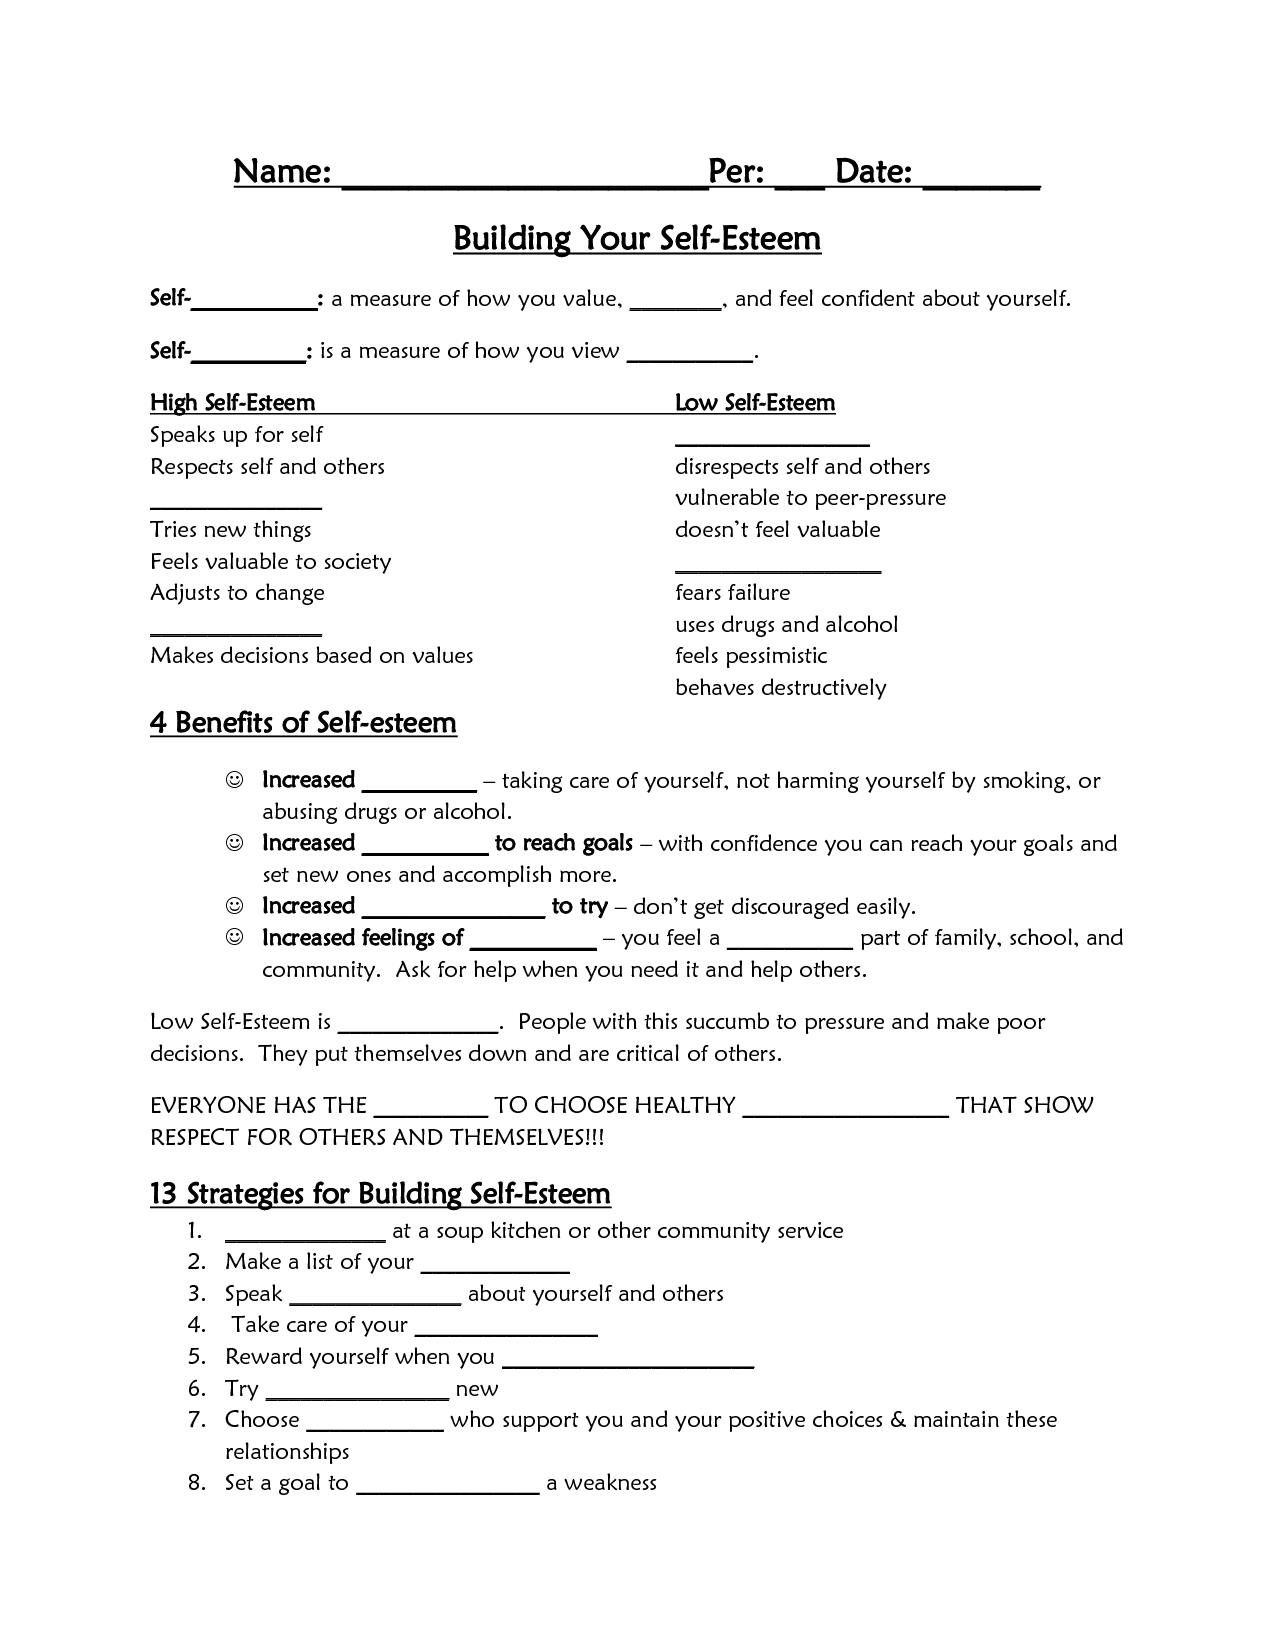 Self-Esteem Worksheet - Google Search | Self-Esteem/confidence | Self Esteem Building Worksheets Printable